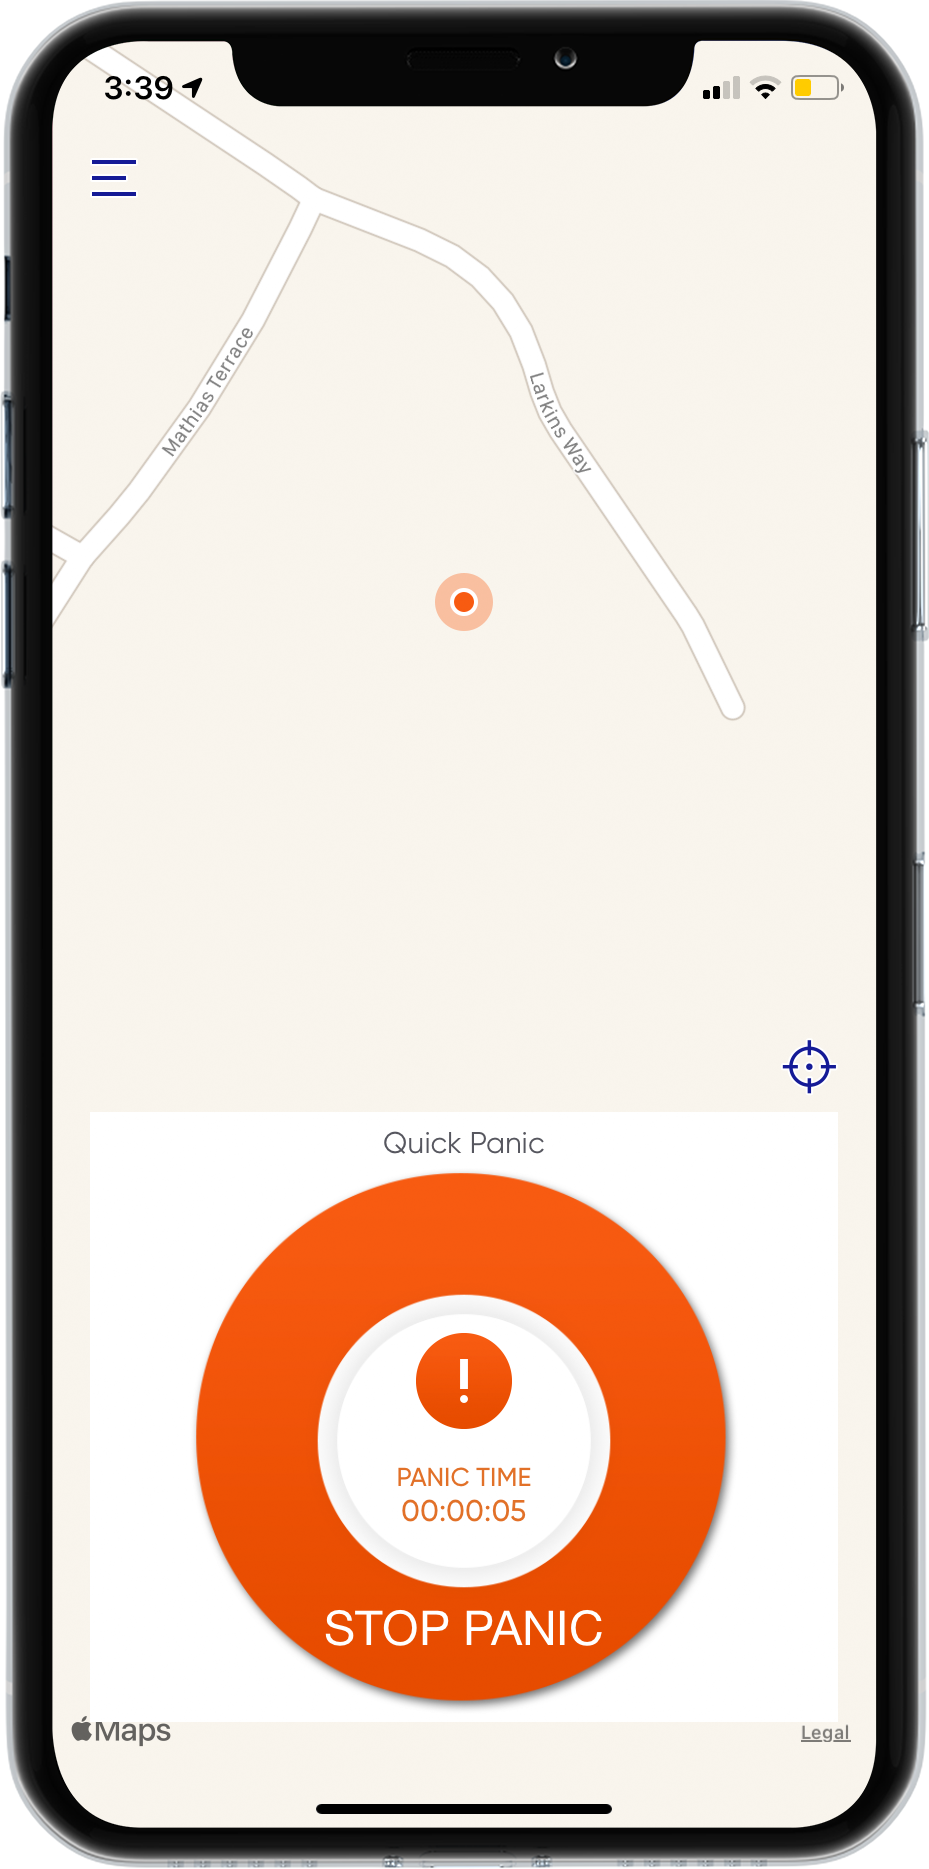 SHEQSY is a smartphone-enabled duress alarm system, which works as one part of an overarching lone worker safety and management solution. This is the SHEQSY app on iPhone with a QuickPanic duress alarm being triggered.